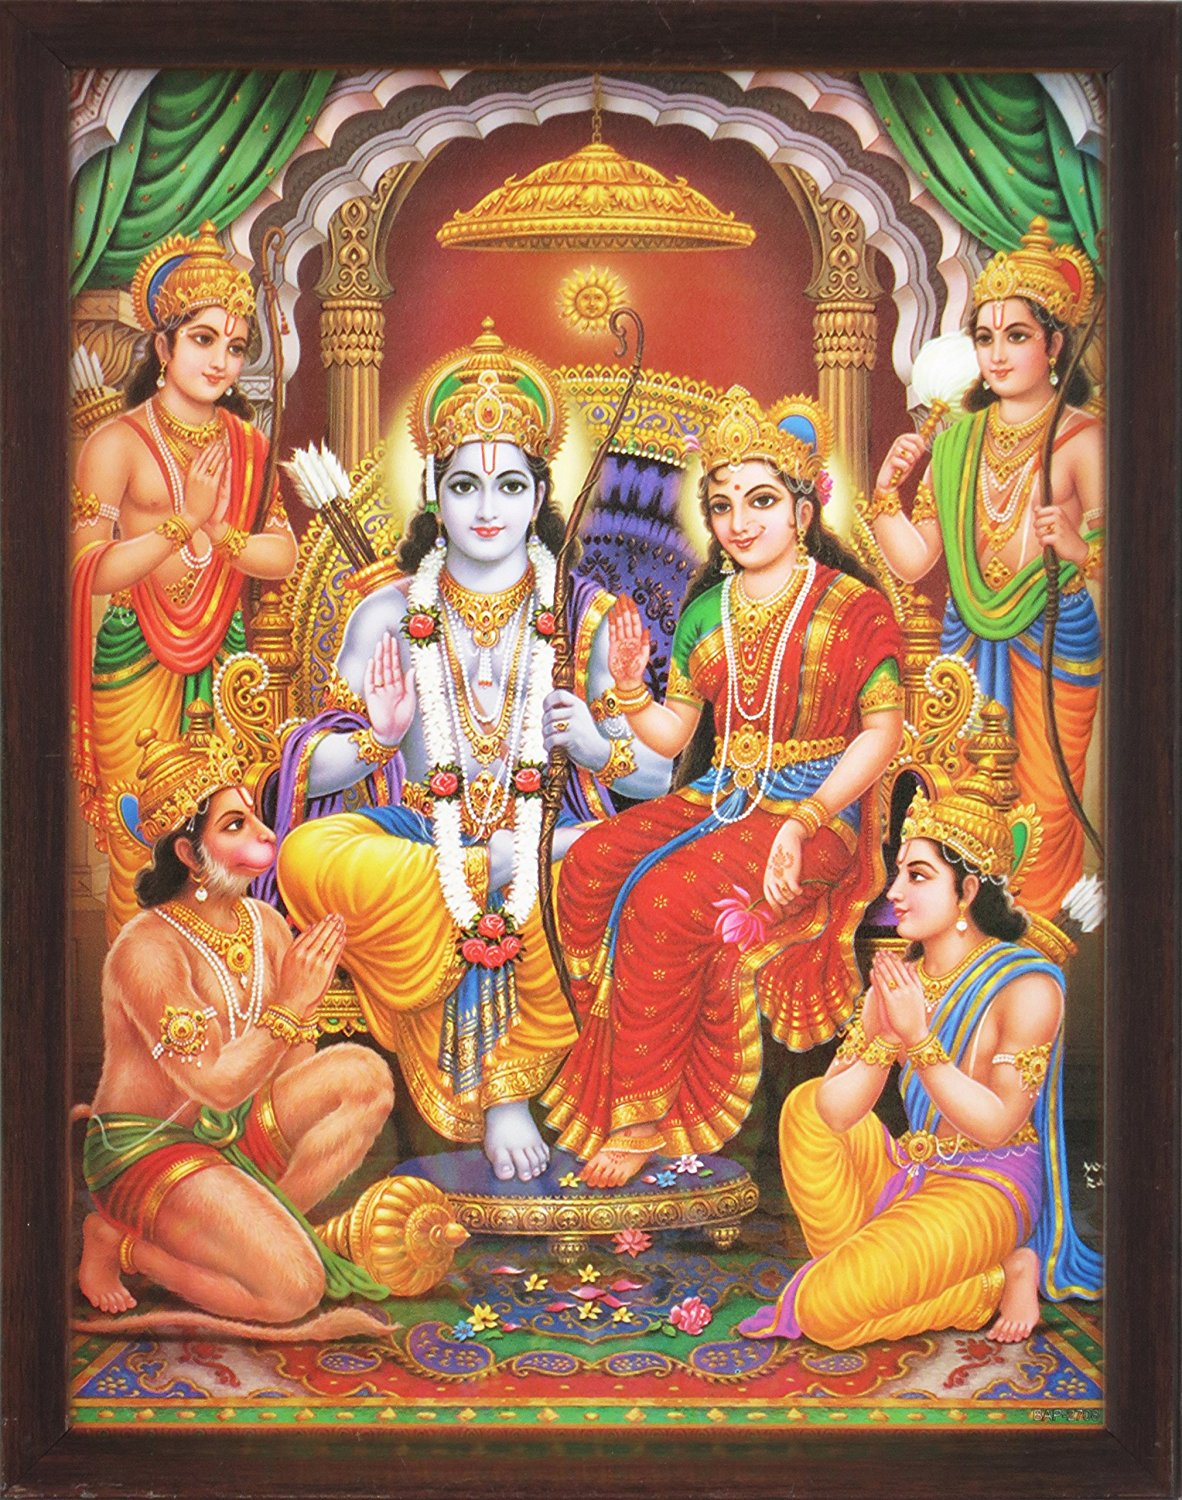 Lord Ram in His Palace with Laxman, Sita, Hanuman and His Brother, a Holy Religious Poster Painting with Frame for Hindu Worship Purpose